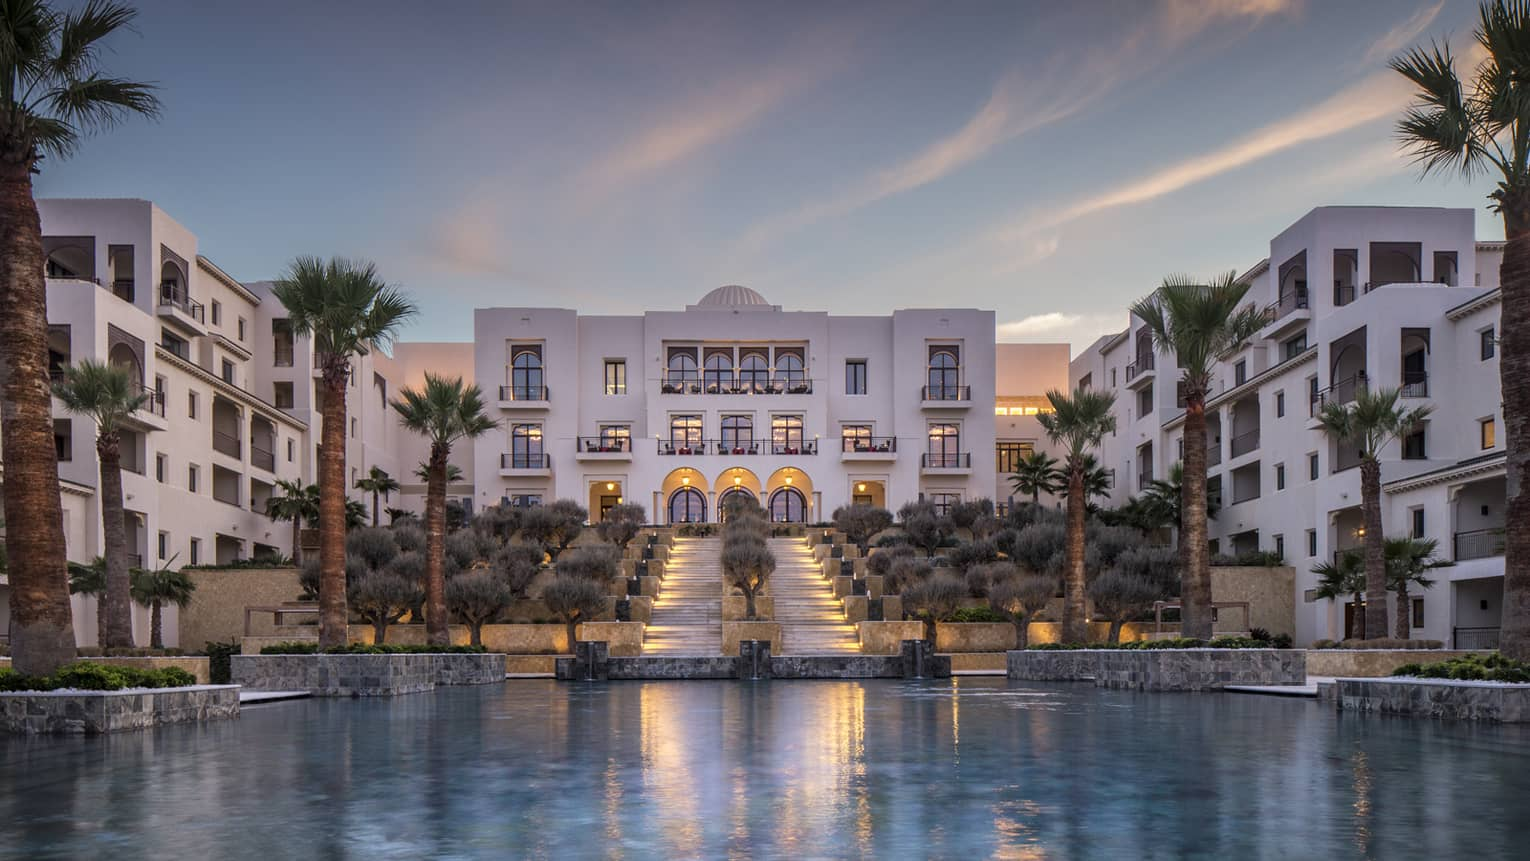 Four Seasons Hotel Tunis modern white buildings around pool, palm trees at sunset